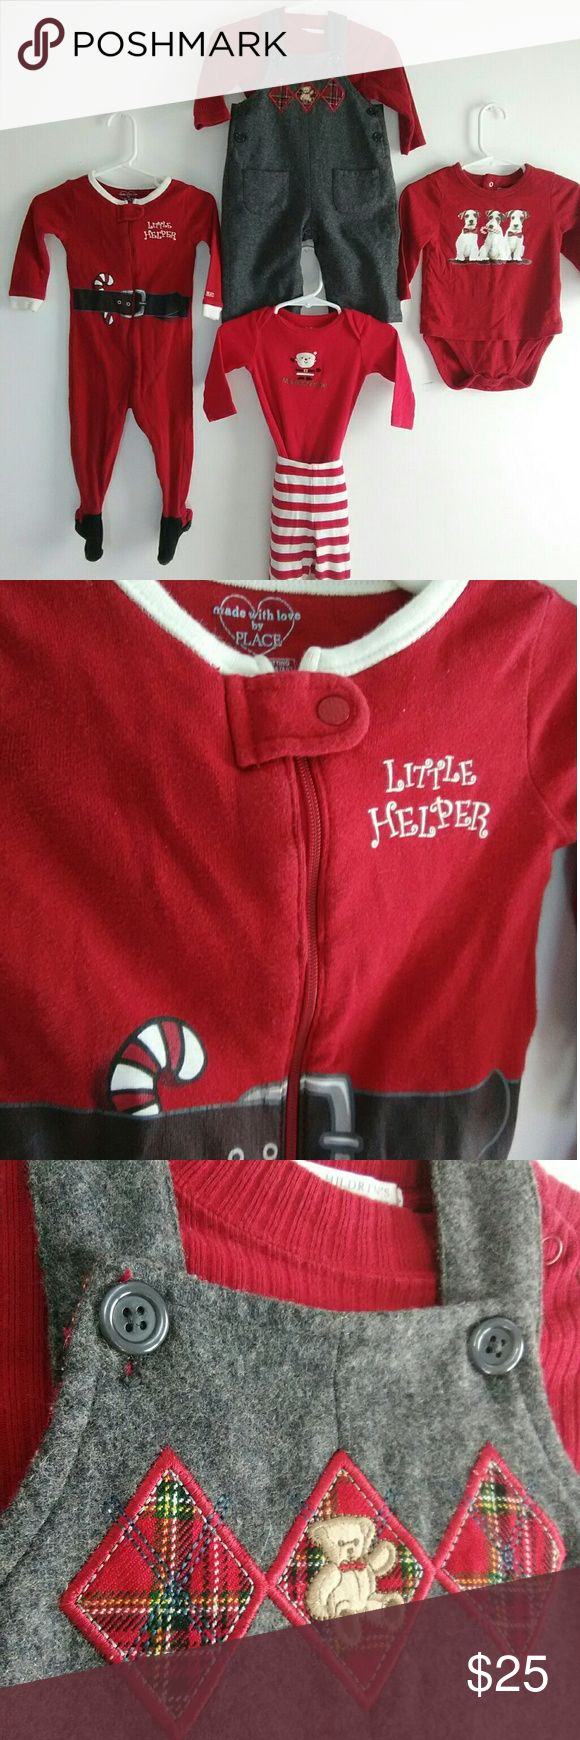 """Baby 8 Piece Christmas Bundle!! Make offer!! 6 baby boy Christmas outfits, 8 pieces!! What's included: * Wool overalls with red onesie, Children's Place,size 0-3 months. *Candy cane onesie that says """"little helper"""" on the front, Children's Place, size 9-12months. *3 dog red onesie, Children's Place, size 9-12 months *""""My First Christmas"""" red onesie, with matching red and white pants, with Santa feet, Carter's, 6-9 months. *Polar bear light blue and white onesie, """"Honor's Baby"""" size 3-6…"""